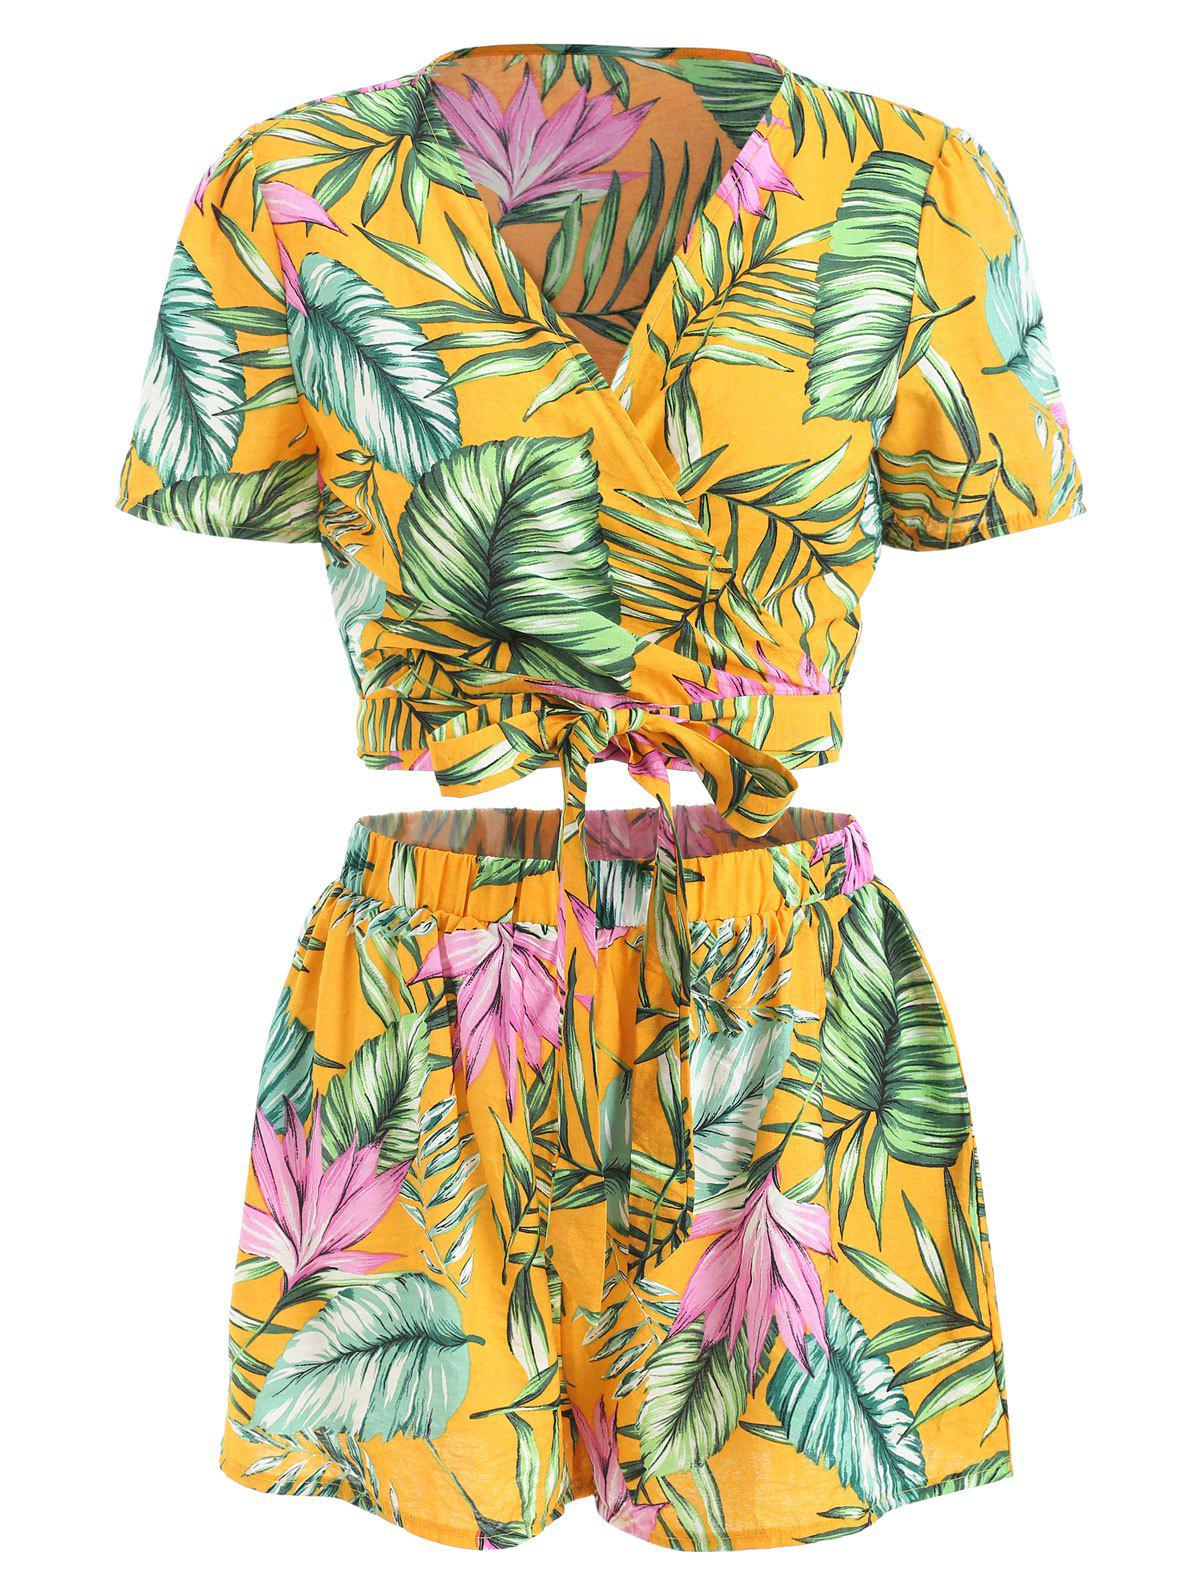 Shop Tropical Print Wrap Crop Top and Shorts